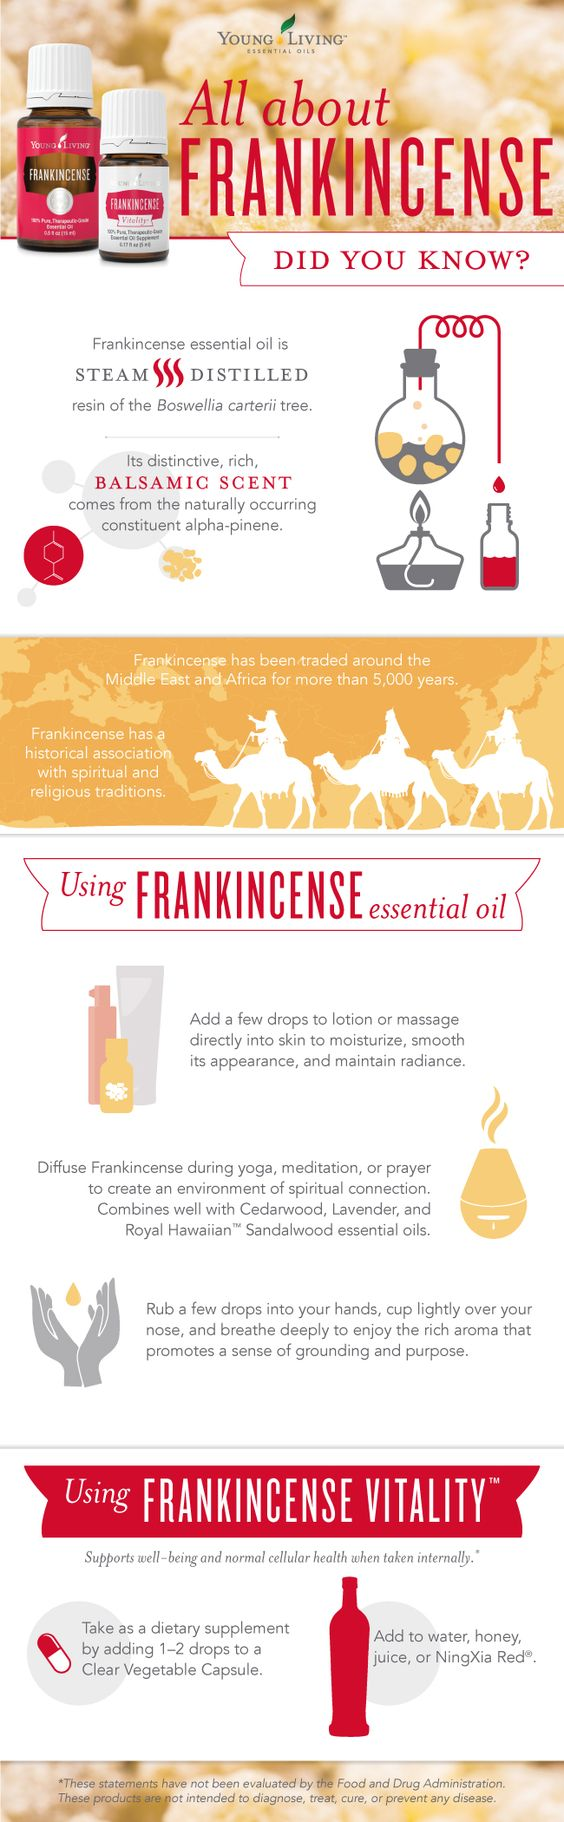 All about Frankincense essential oil ~ Young Living Essential Oils, infographic